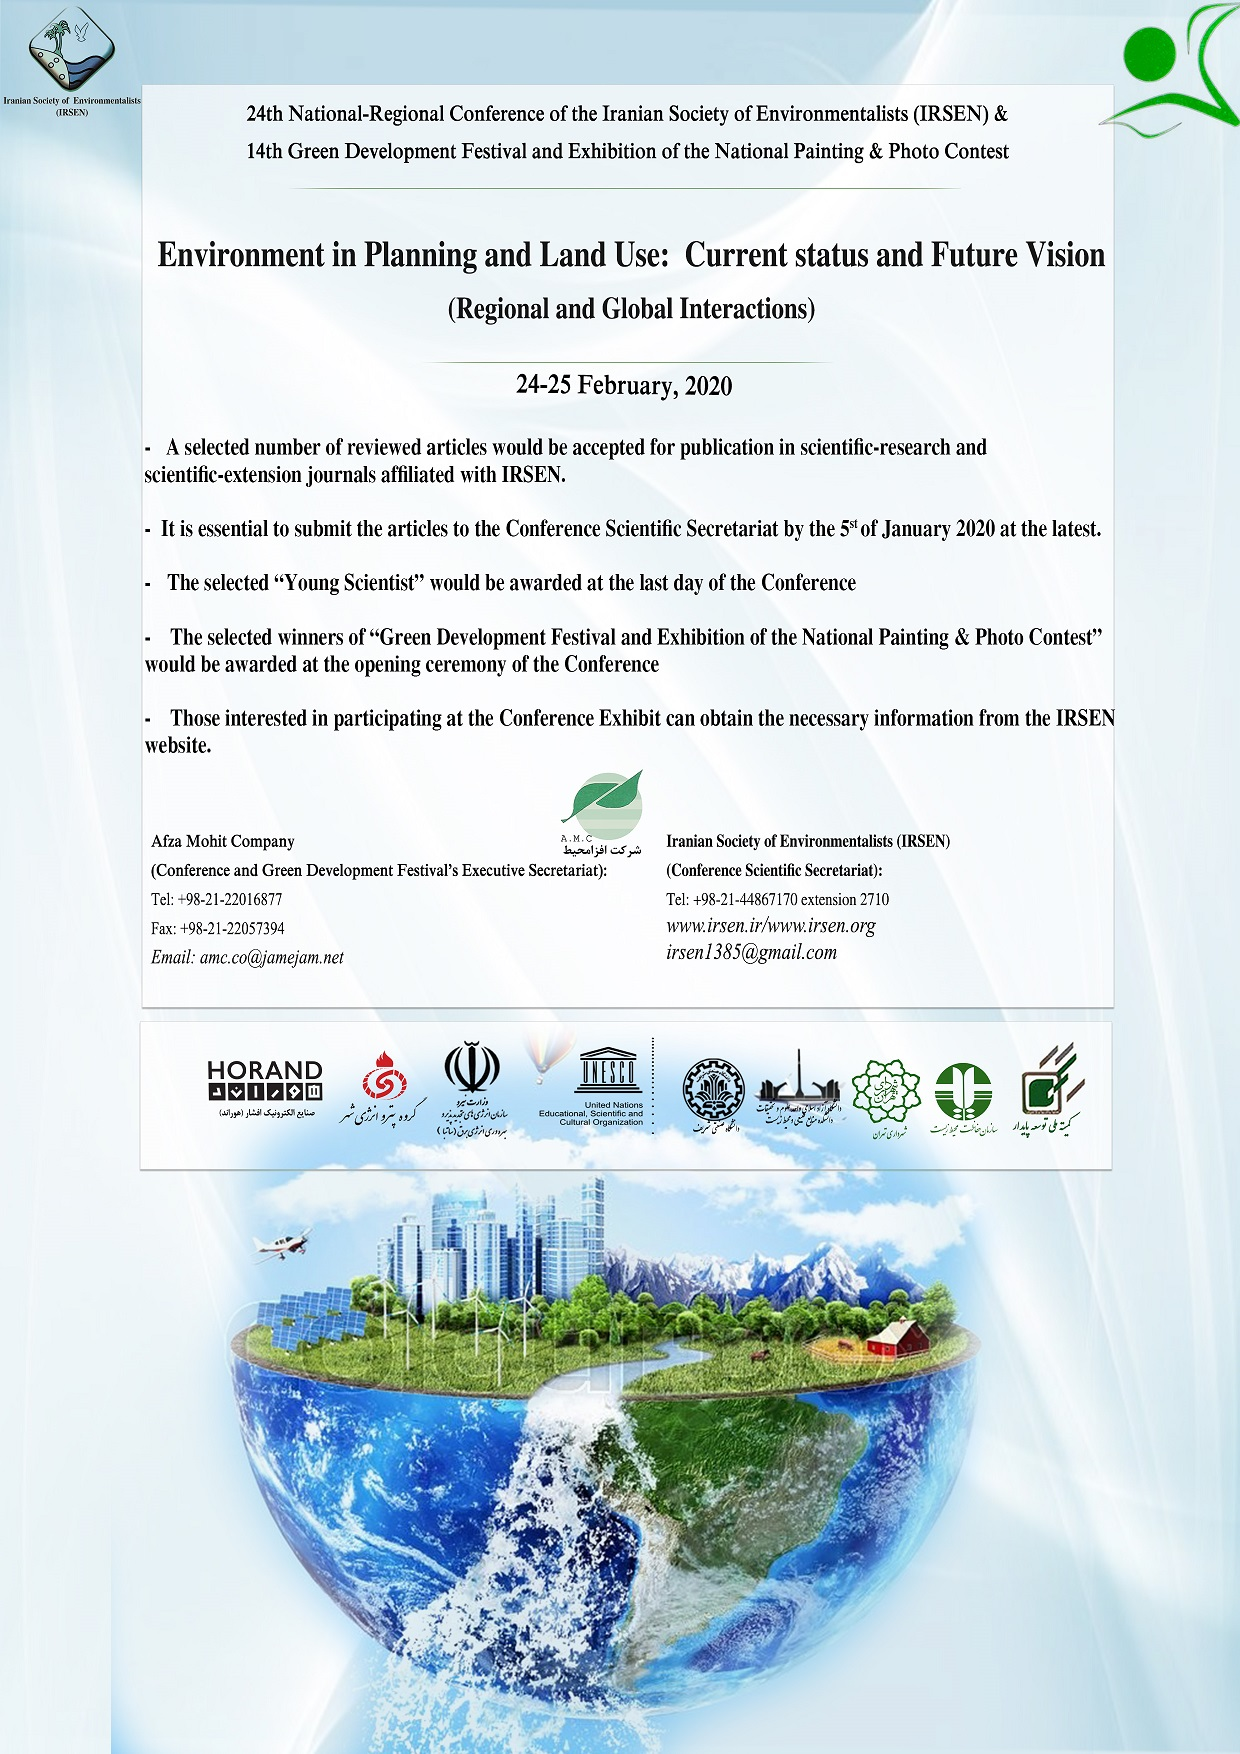 24th-national-regional-conference-of-the-iranian-society-of-environmentalists-irsen-and-14th-green-development-festival-and-exhibition-of-the-national-painting-and-photo-contest-environment-in-planning-and-land-use-current-status-and-future-vision-regiona